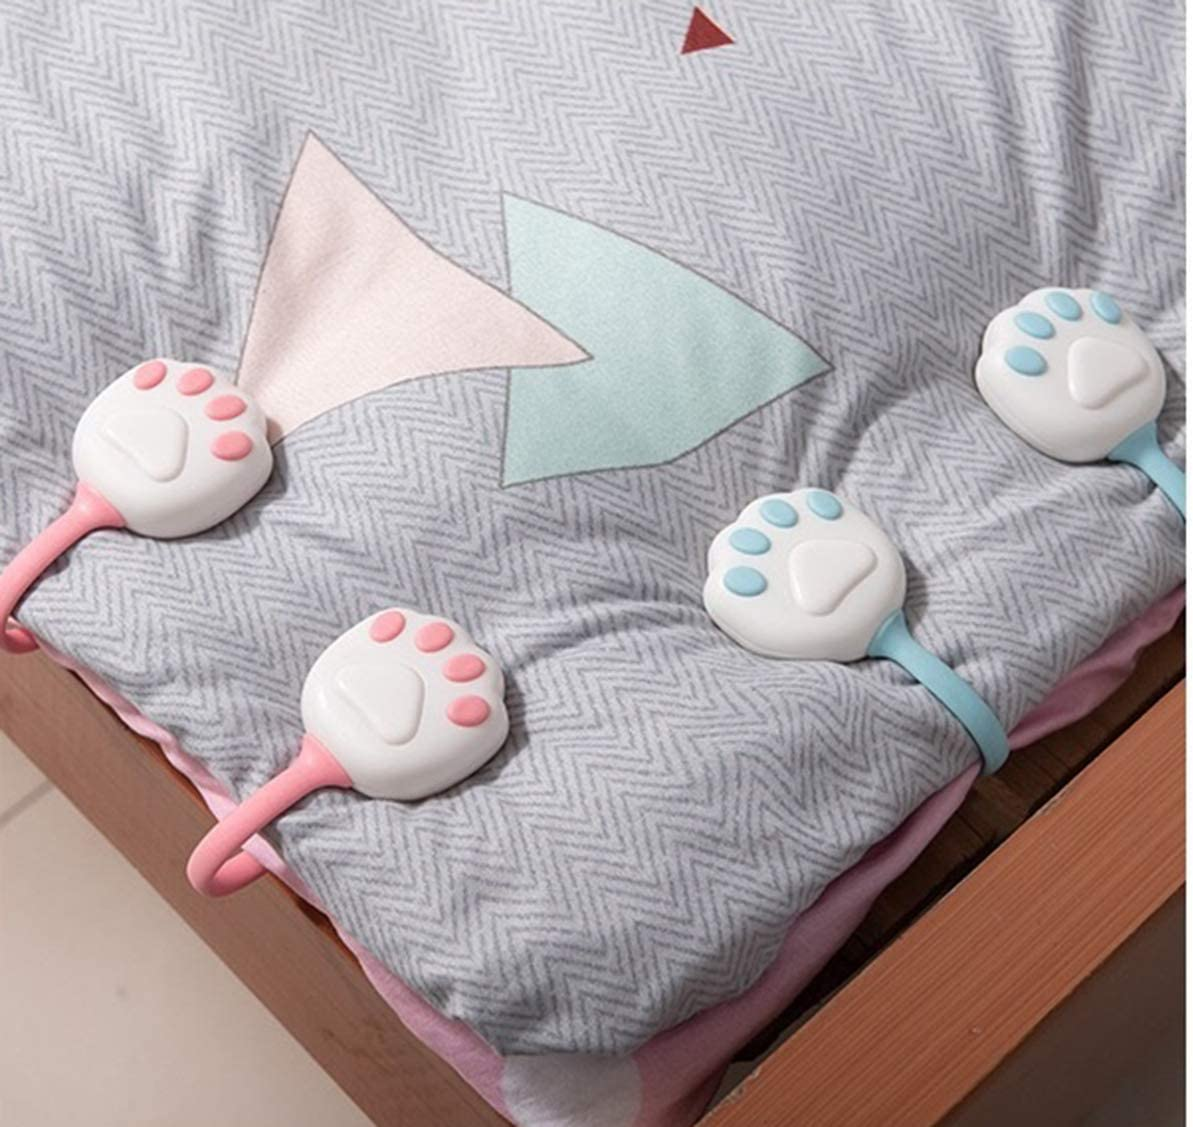 Portable Grippers Clip Clamp Bed Duvet Quilt Covers Sheet Holder Non slip Set